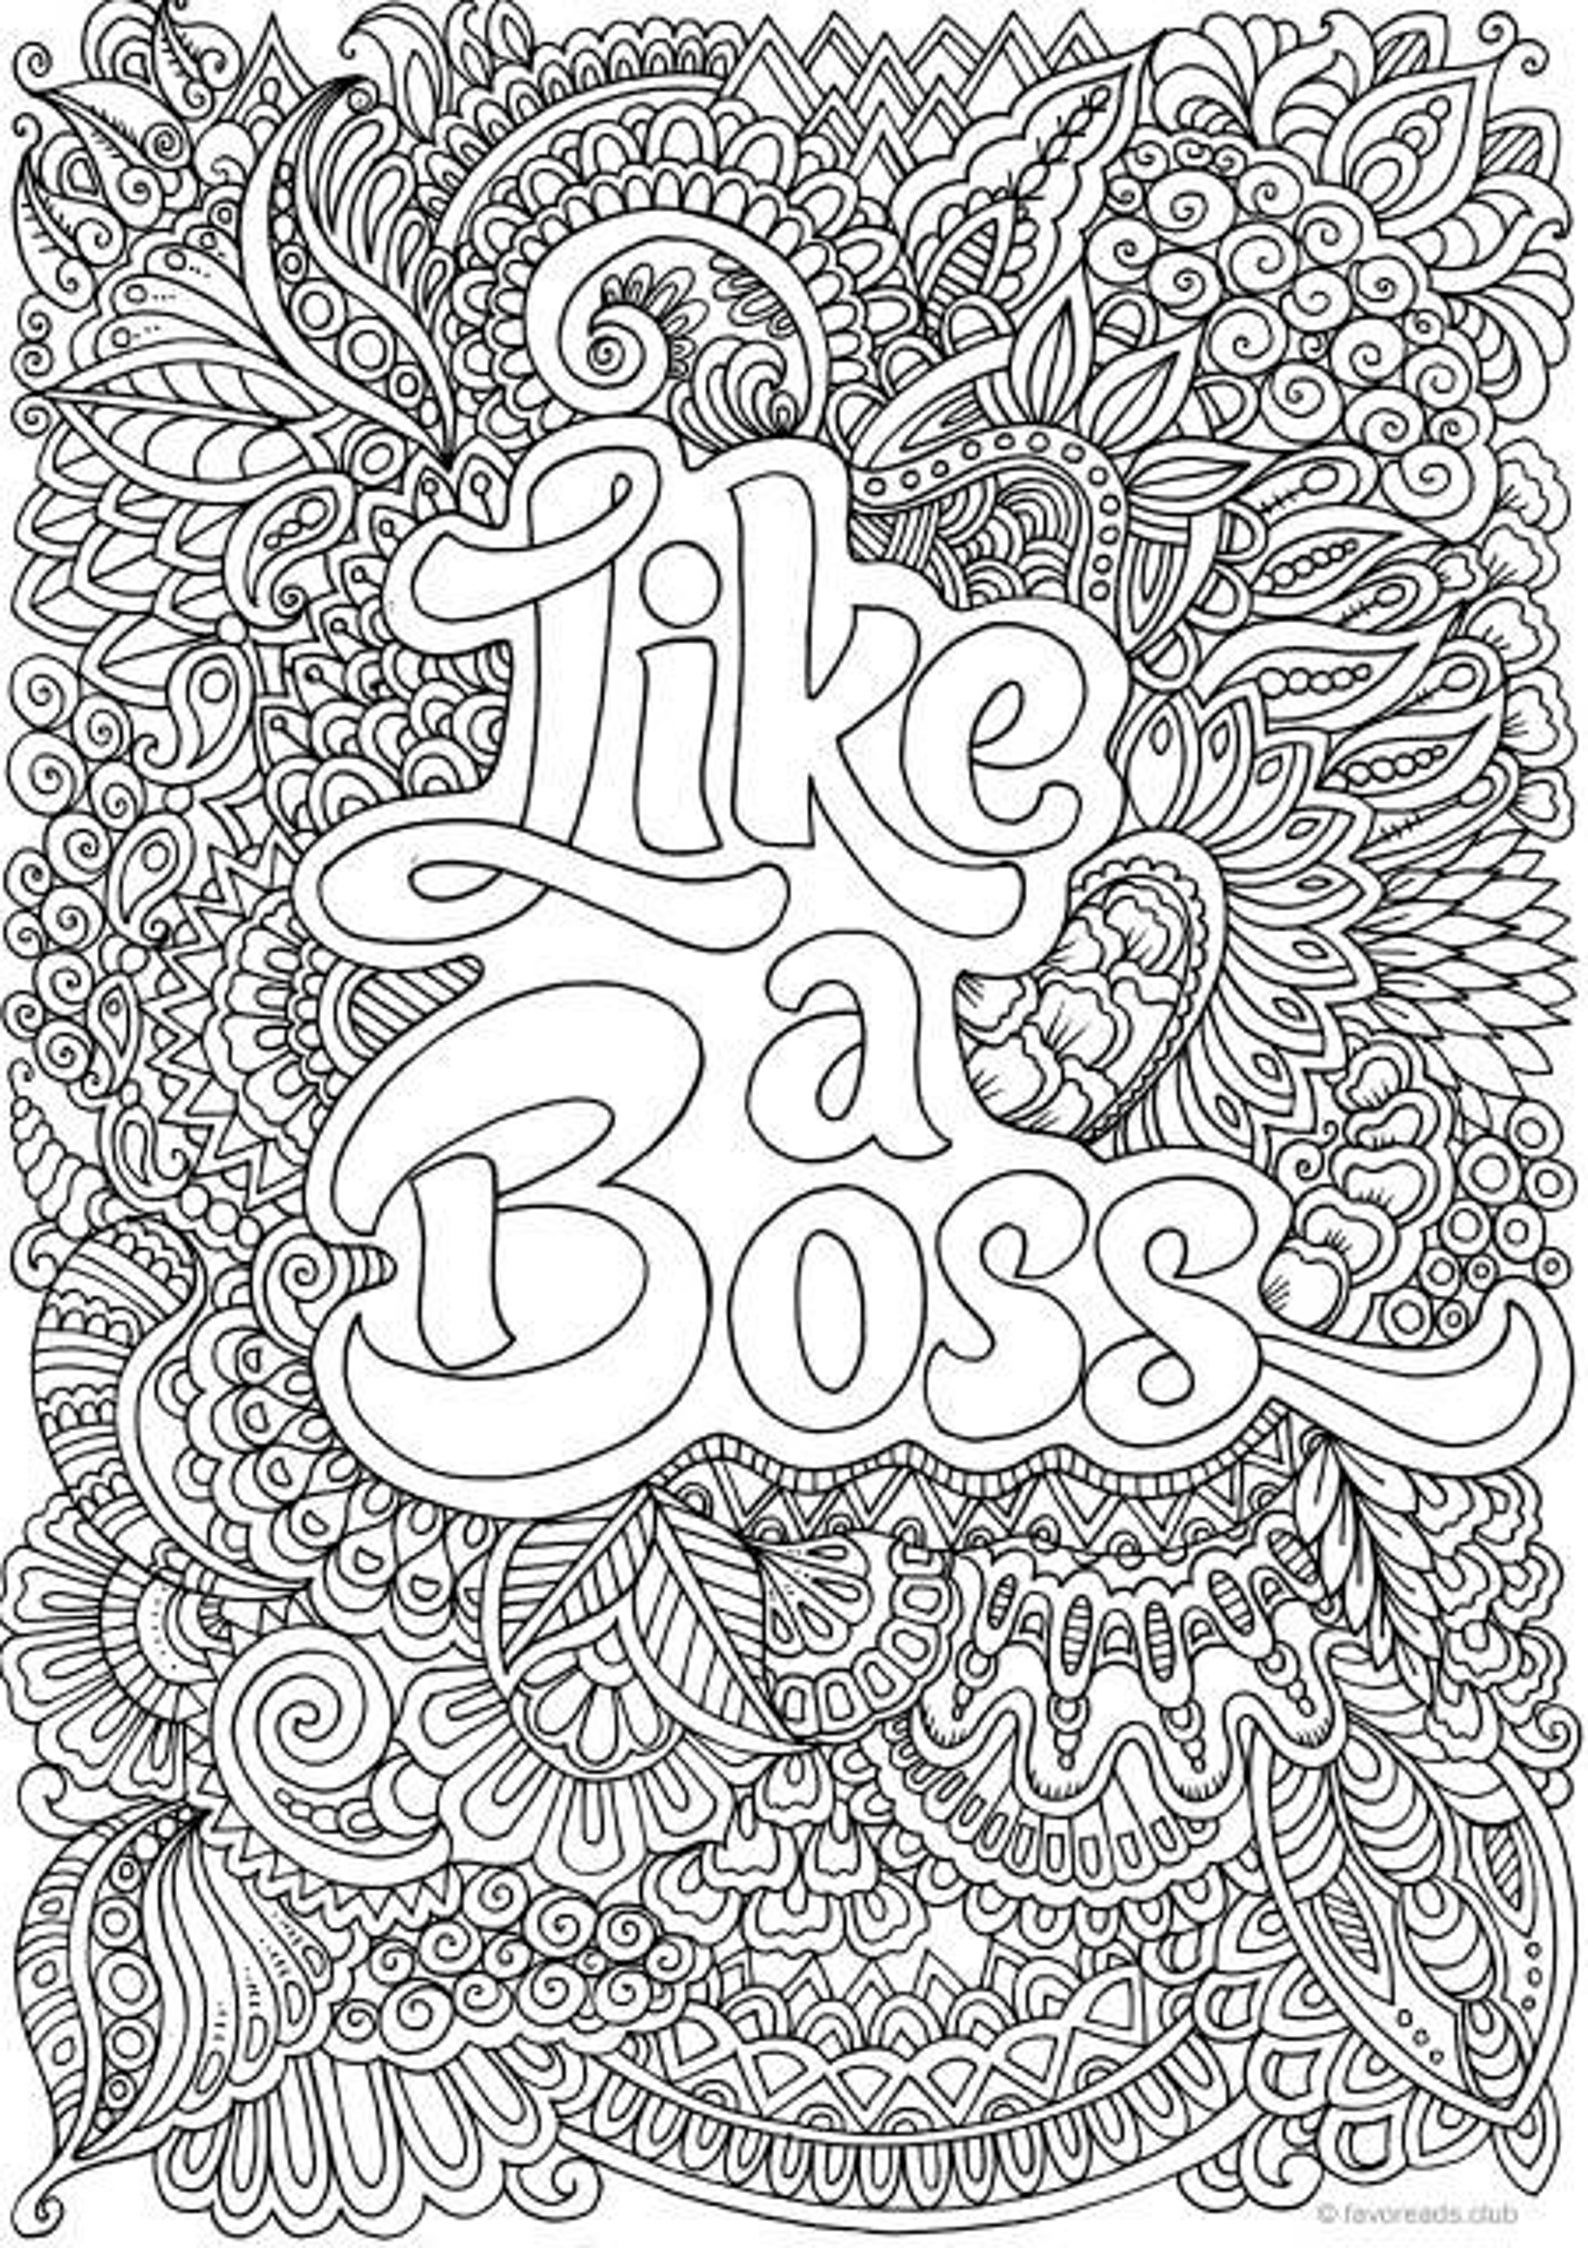 Pin On My Doodle Art Inspirations